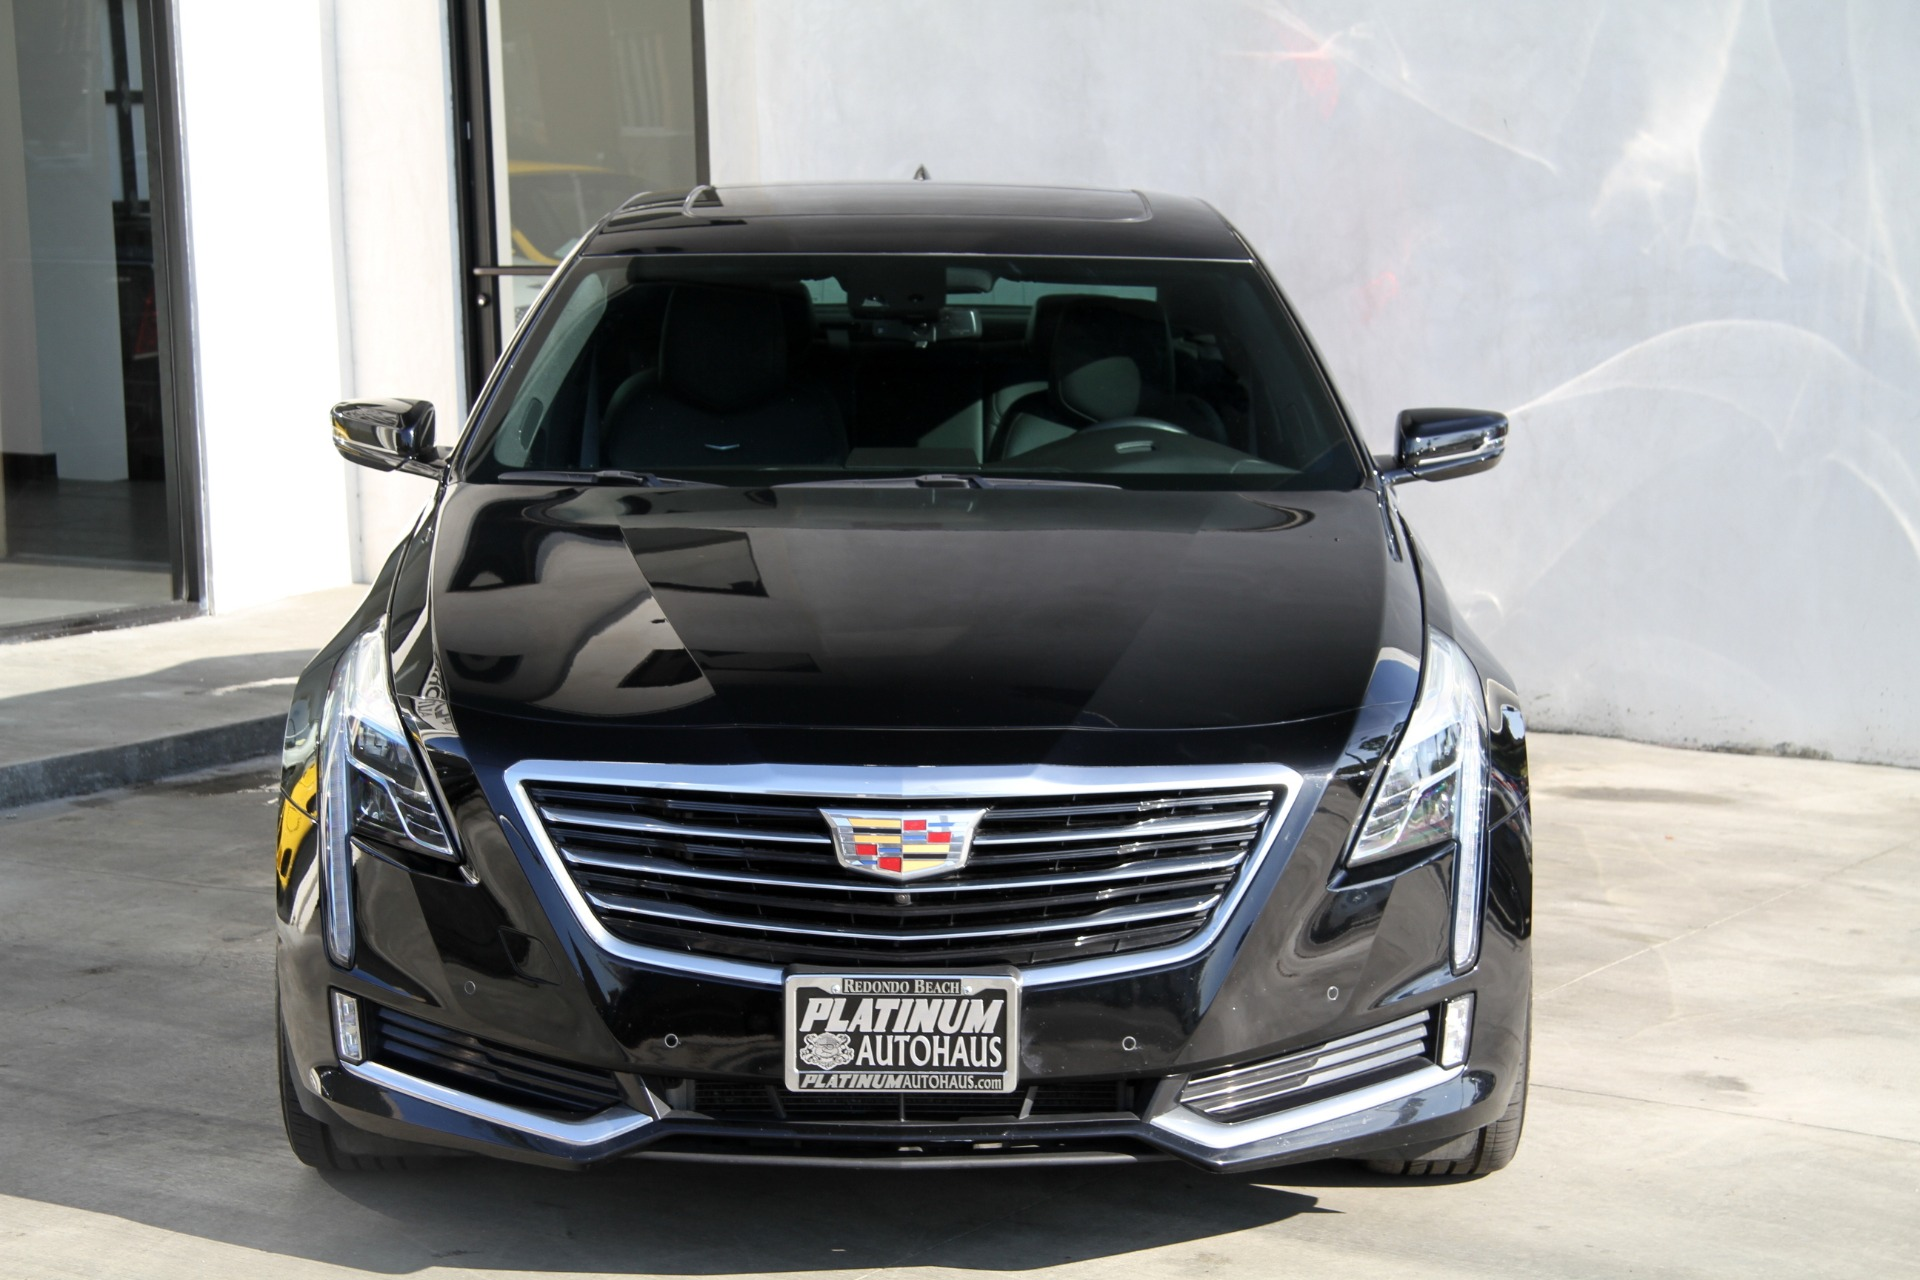 Ct6 For Sale >> 2016 Cadillac CT6 3.6L Luxury Stock # 6080A for sale near Redondo Beach, CA   CA Cadillac Dealer